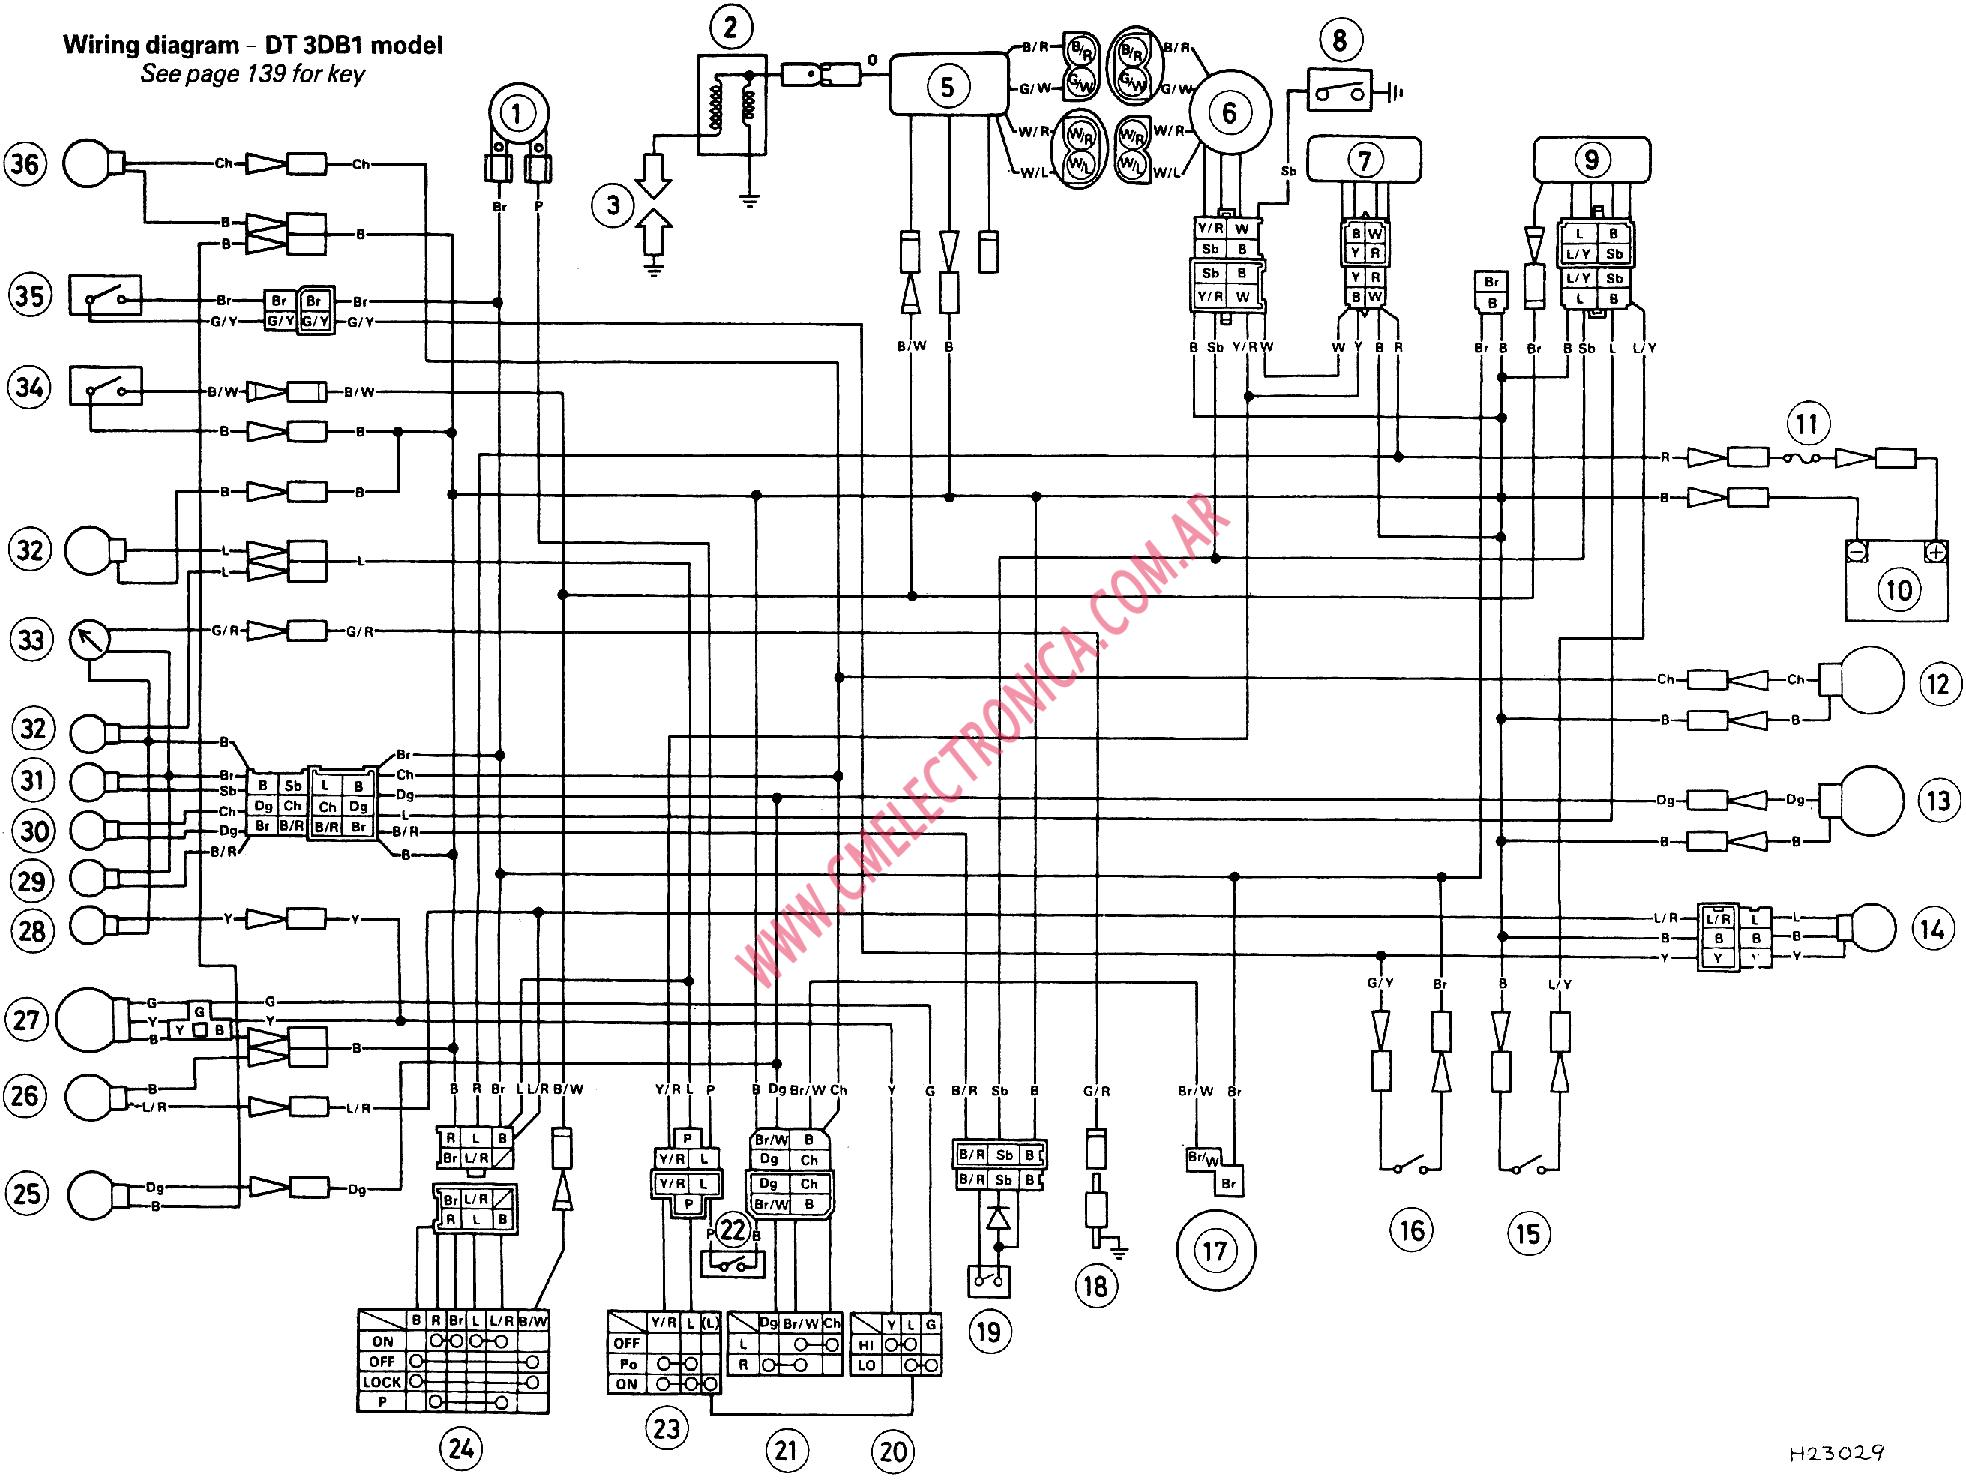 1980 Xs650 Wiring Diagram Layout Diagrams Chopper Harness 1979 Yamaha Gt80 Xt350